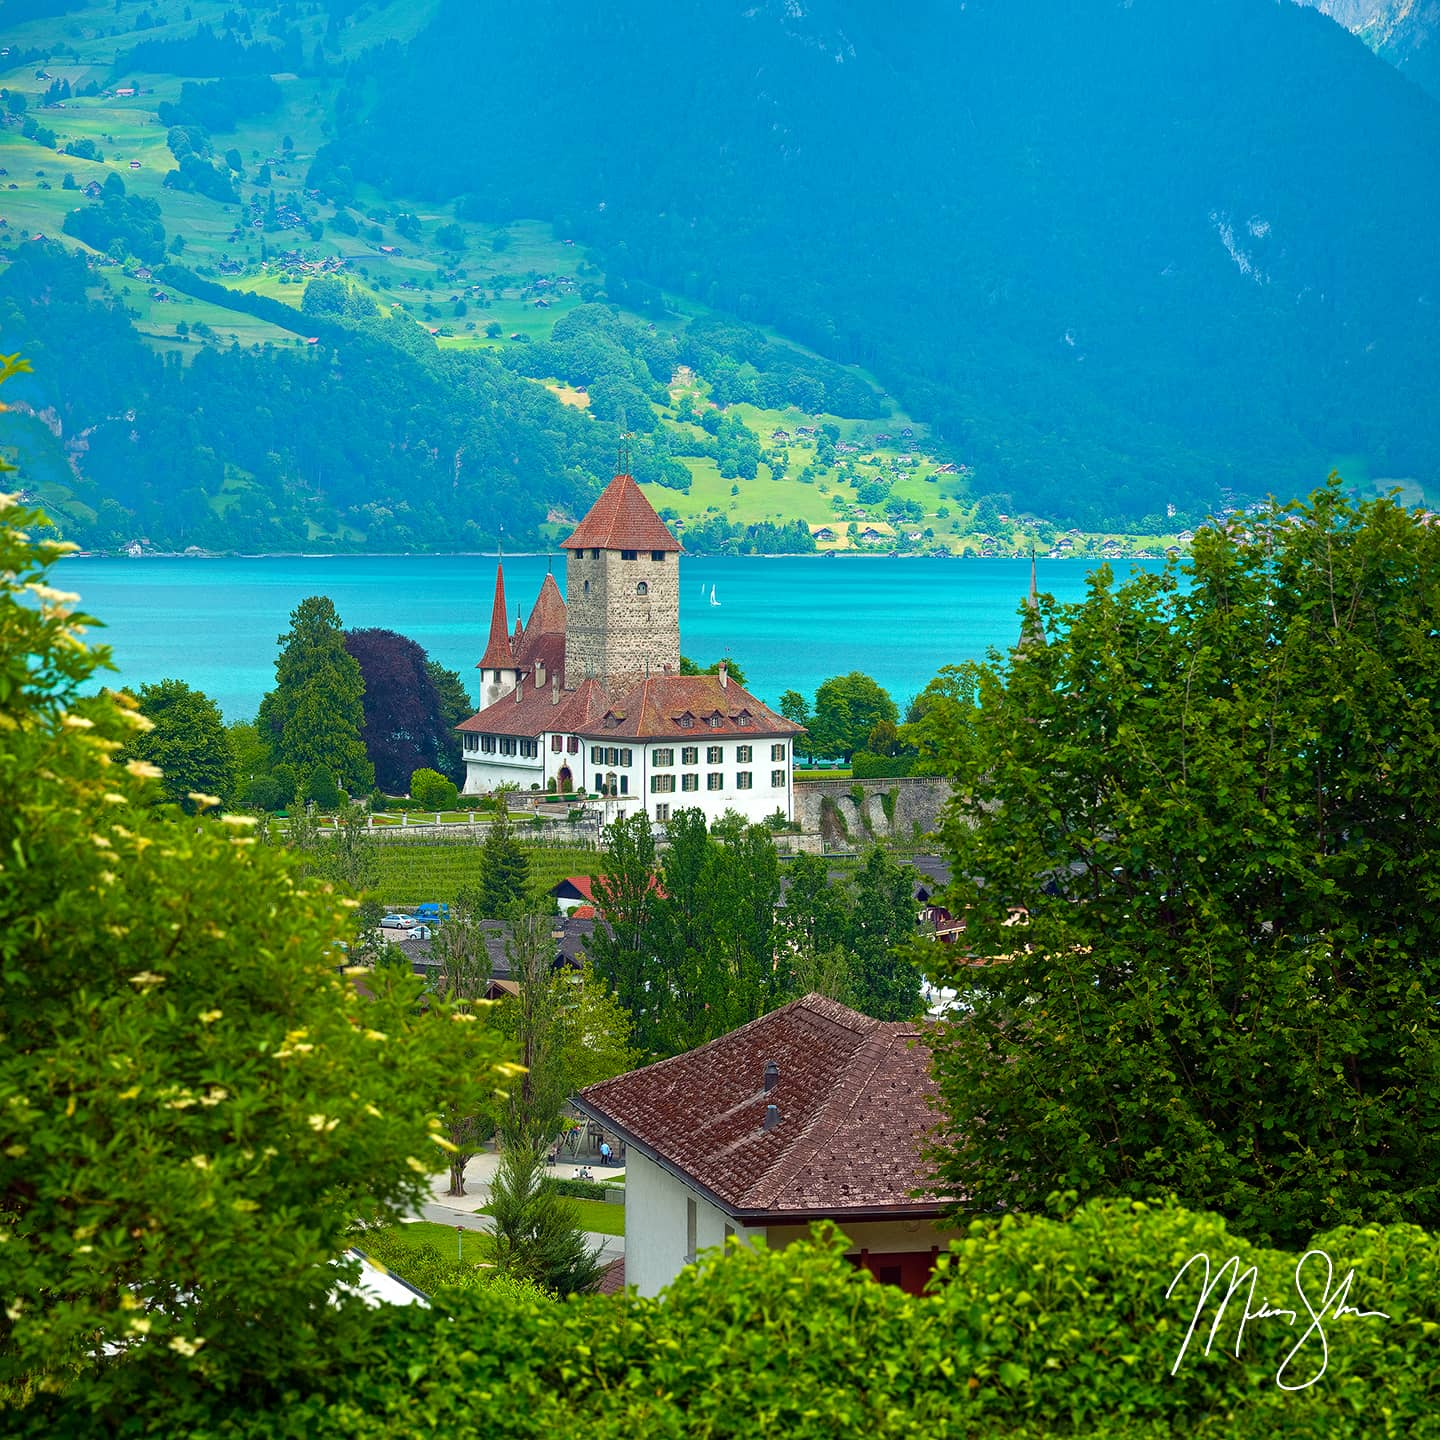 Spiez Castle - Spiez, Switzerland